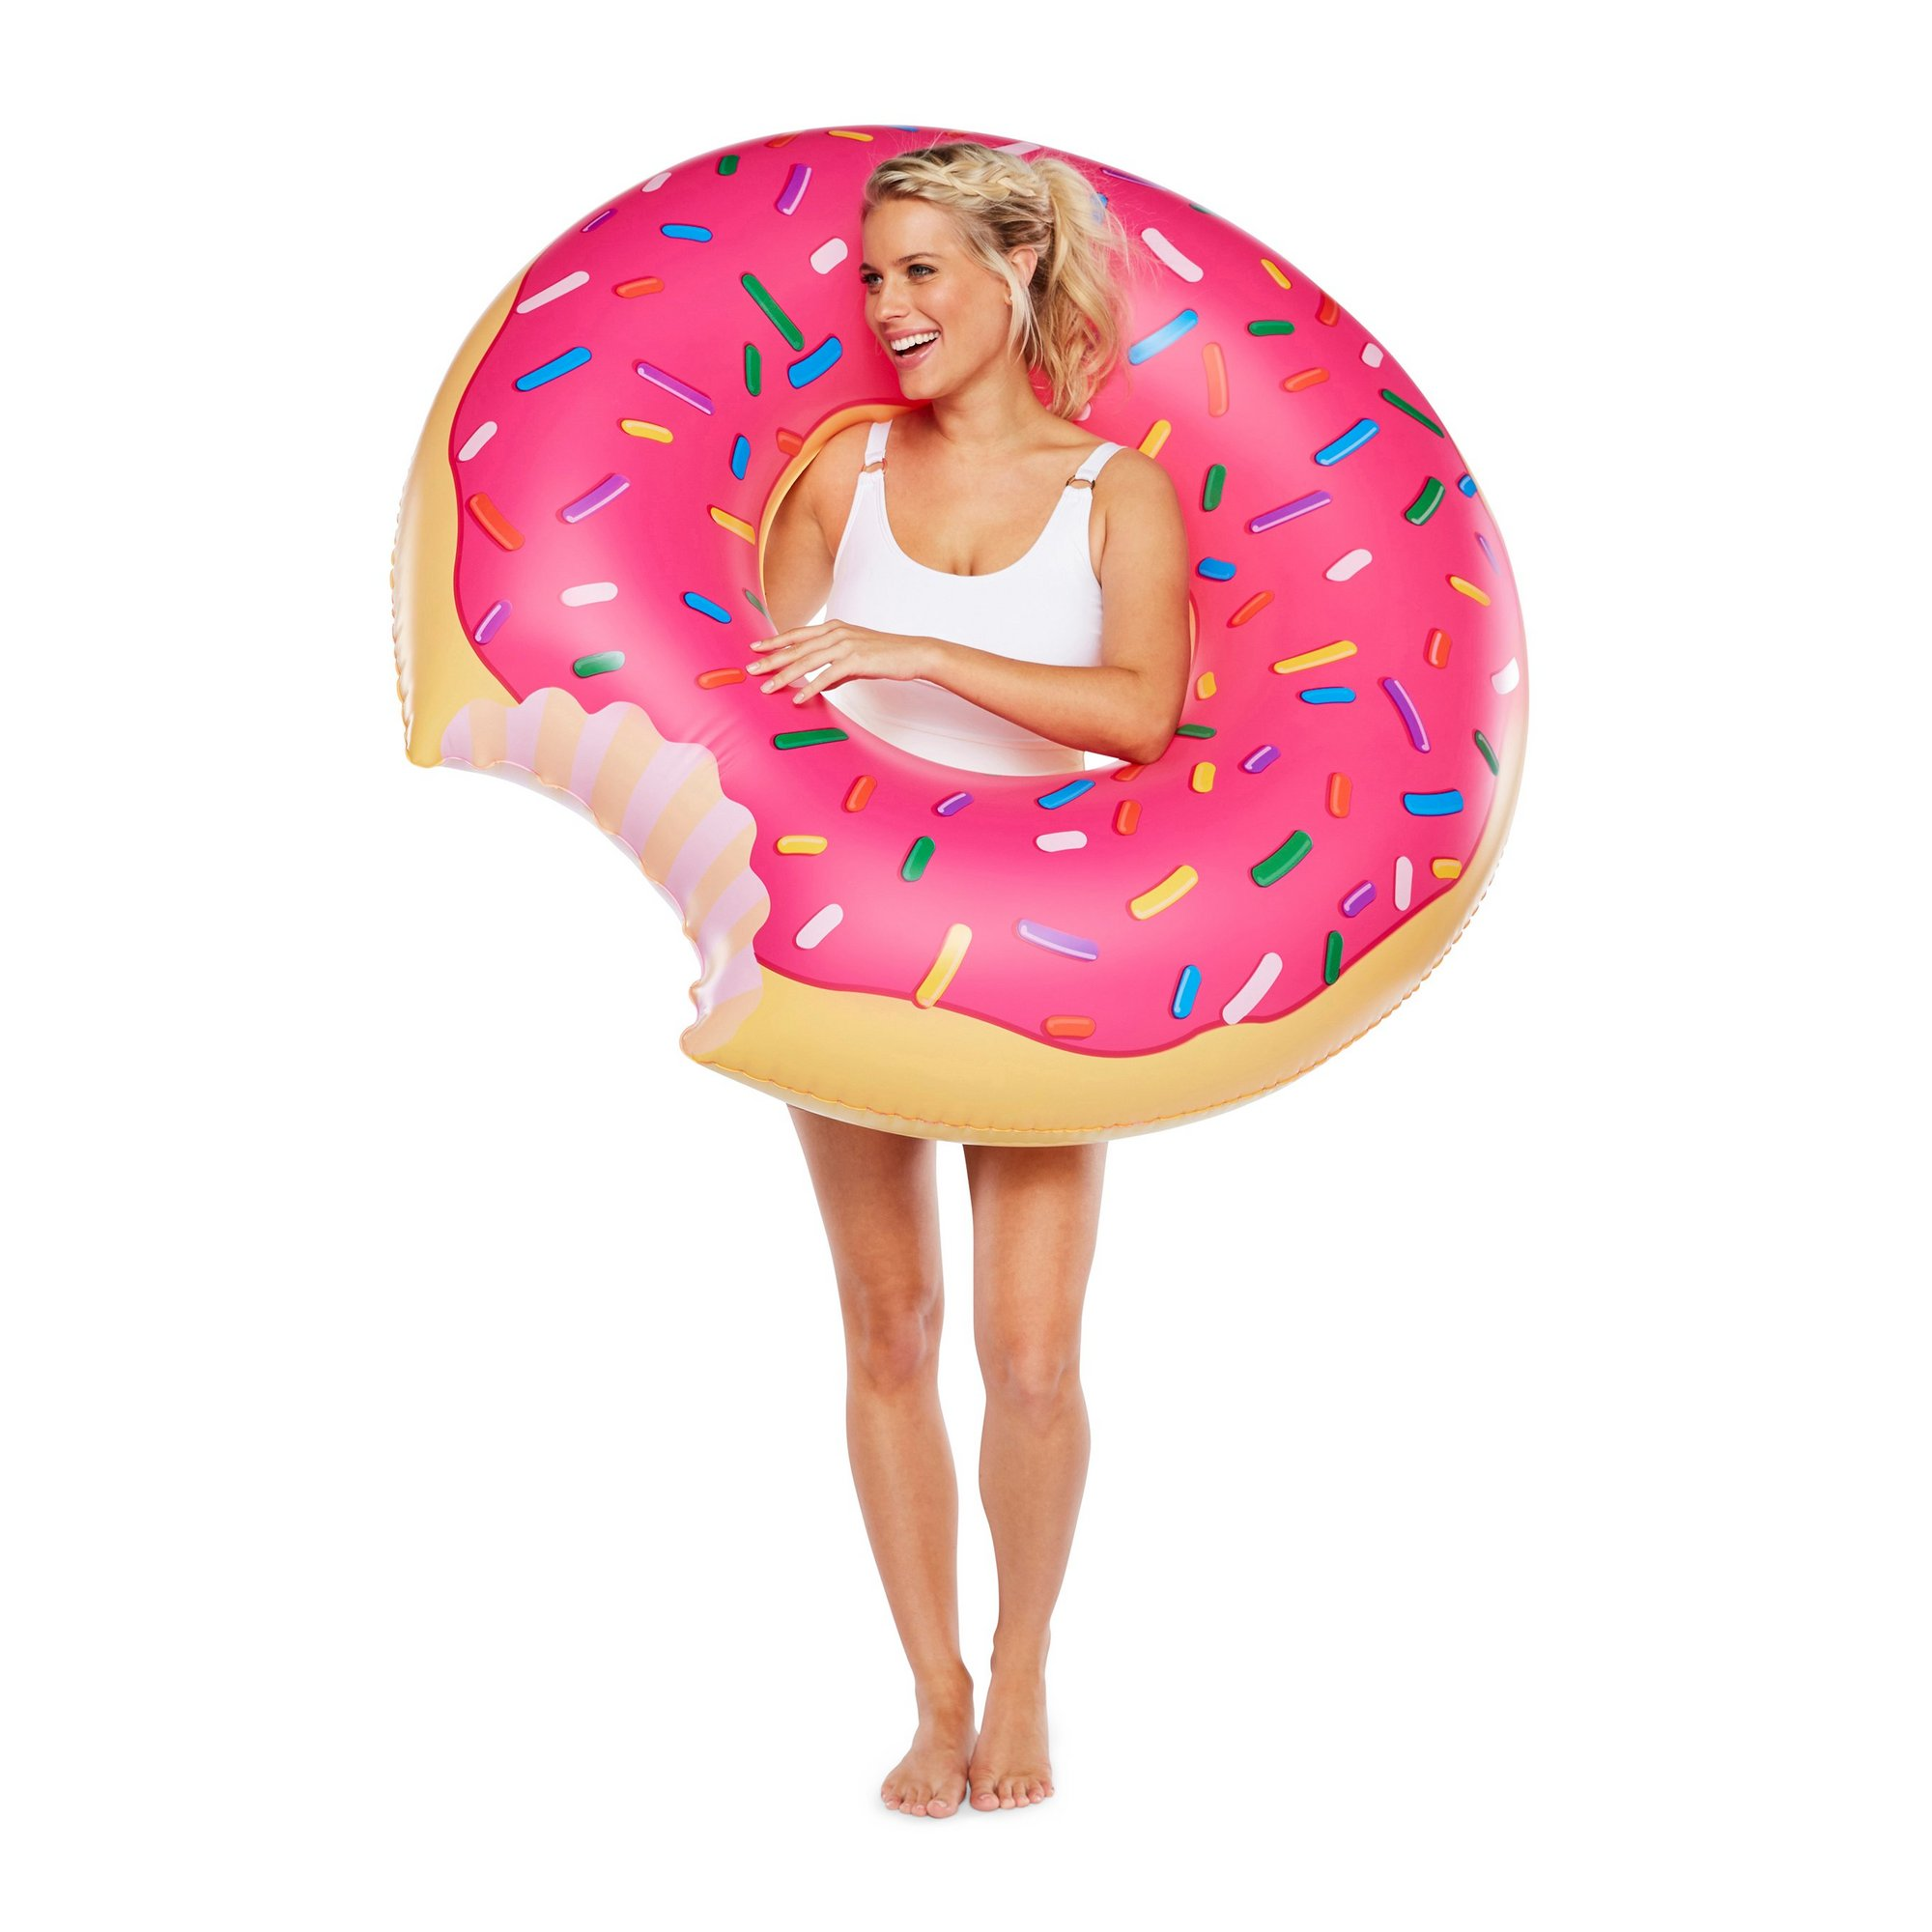 Image of Giant Pink Frosted Donut Pool Float